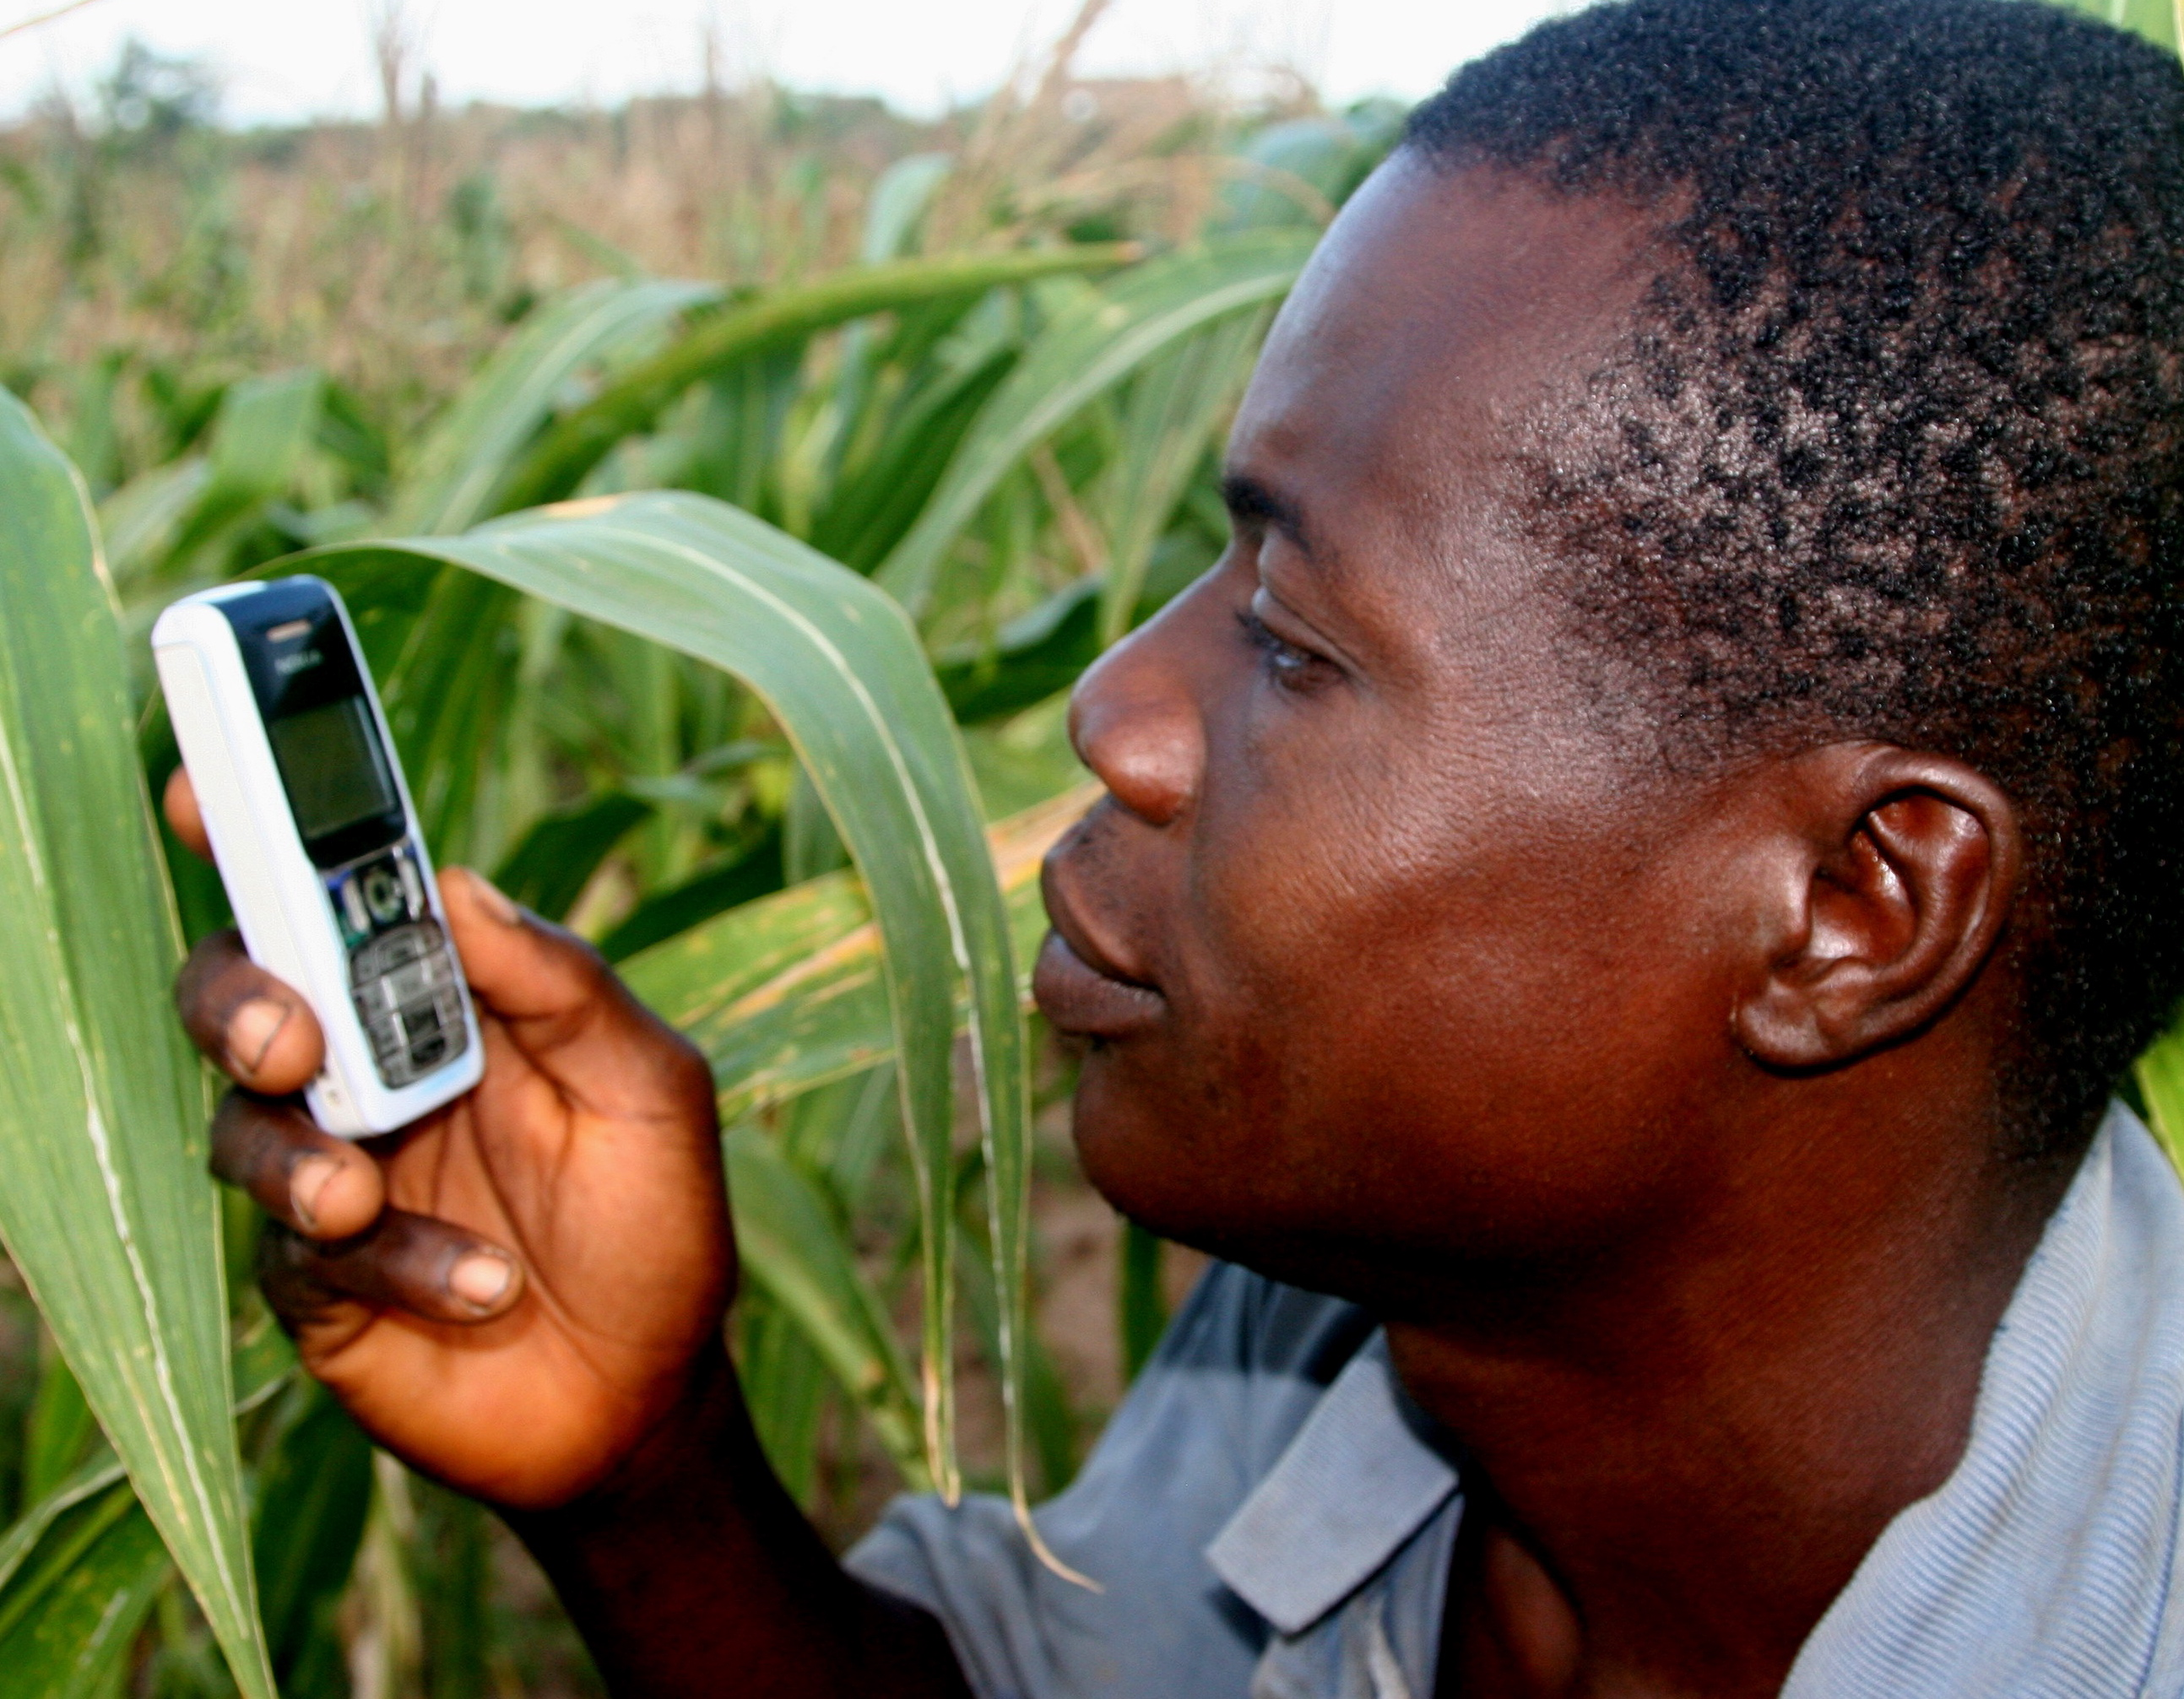 Minister Insists On Buying GSM Phones For Farmers